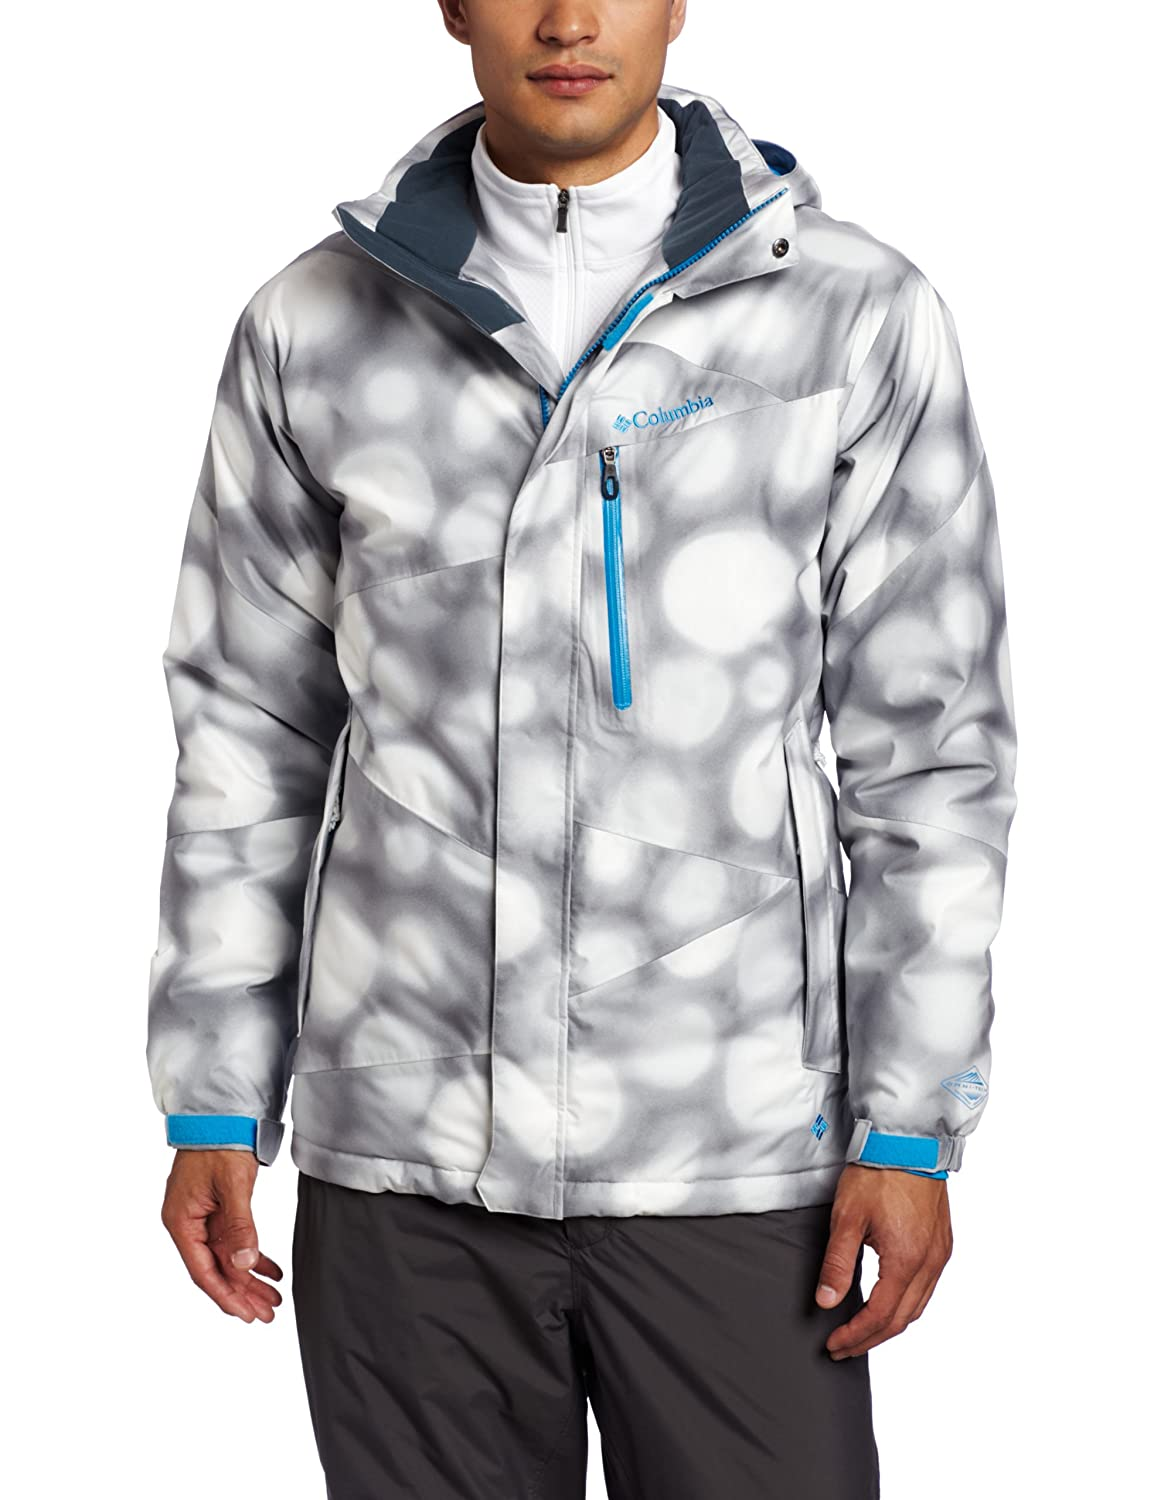 Columbia Men's Alpine Action Jungen Jacke L Weiß - Sea Salt Bubbles Print